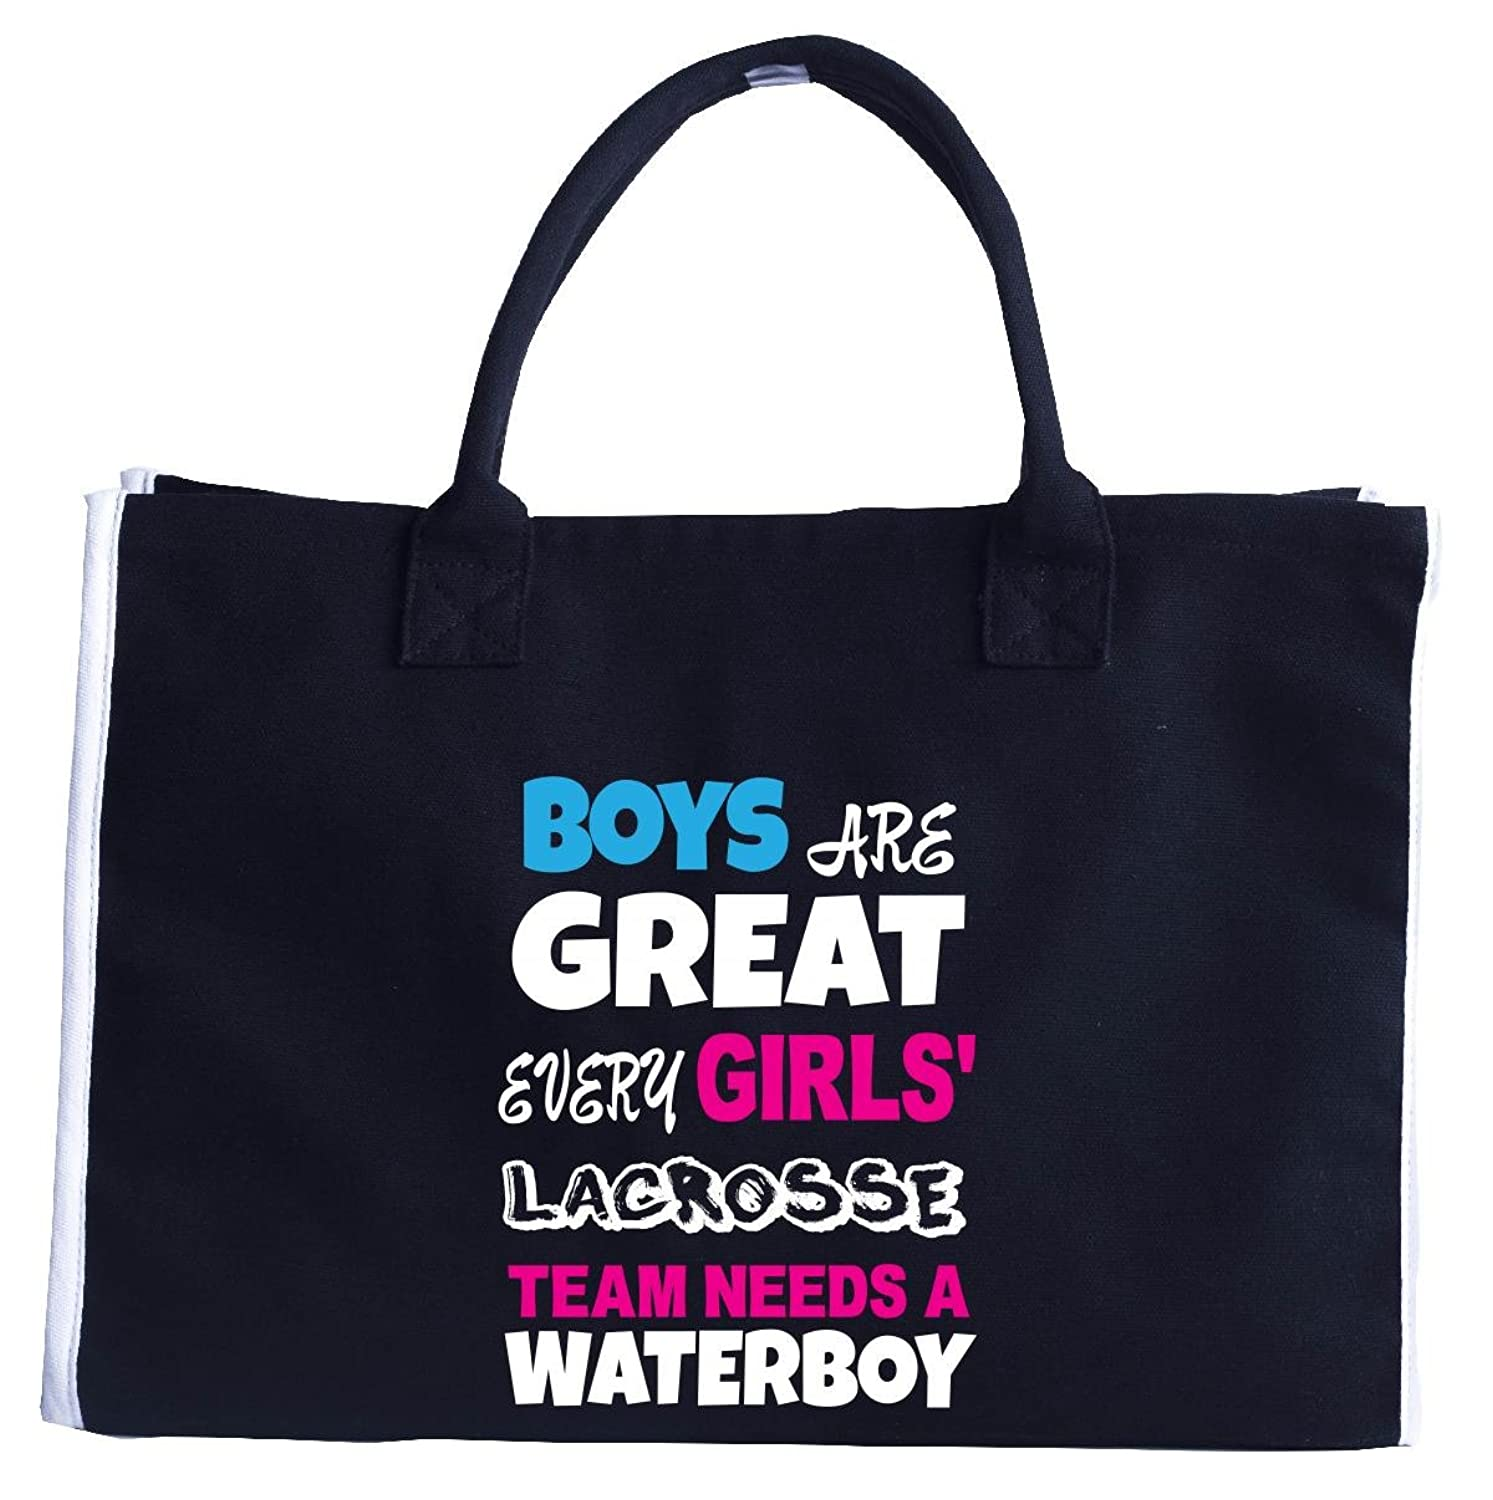 Every Girls Lacrosse Team Needs A Waterboy Funny Lacrosse - Tote Bag